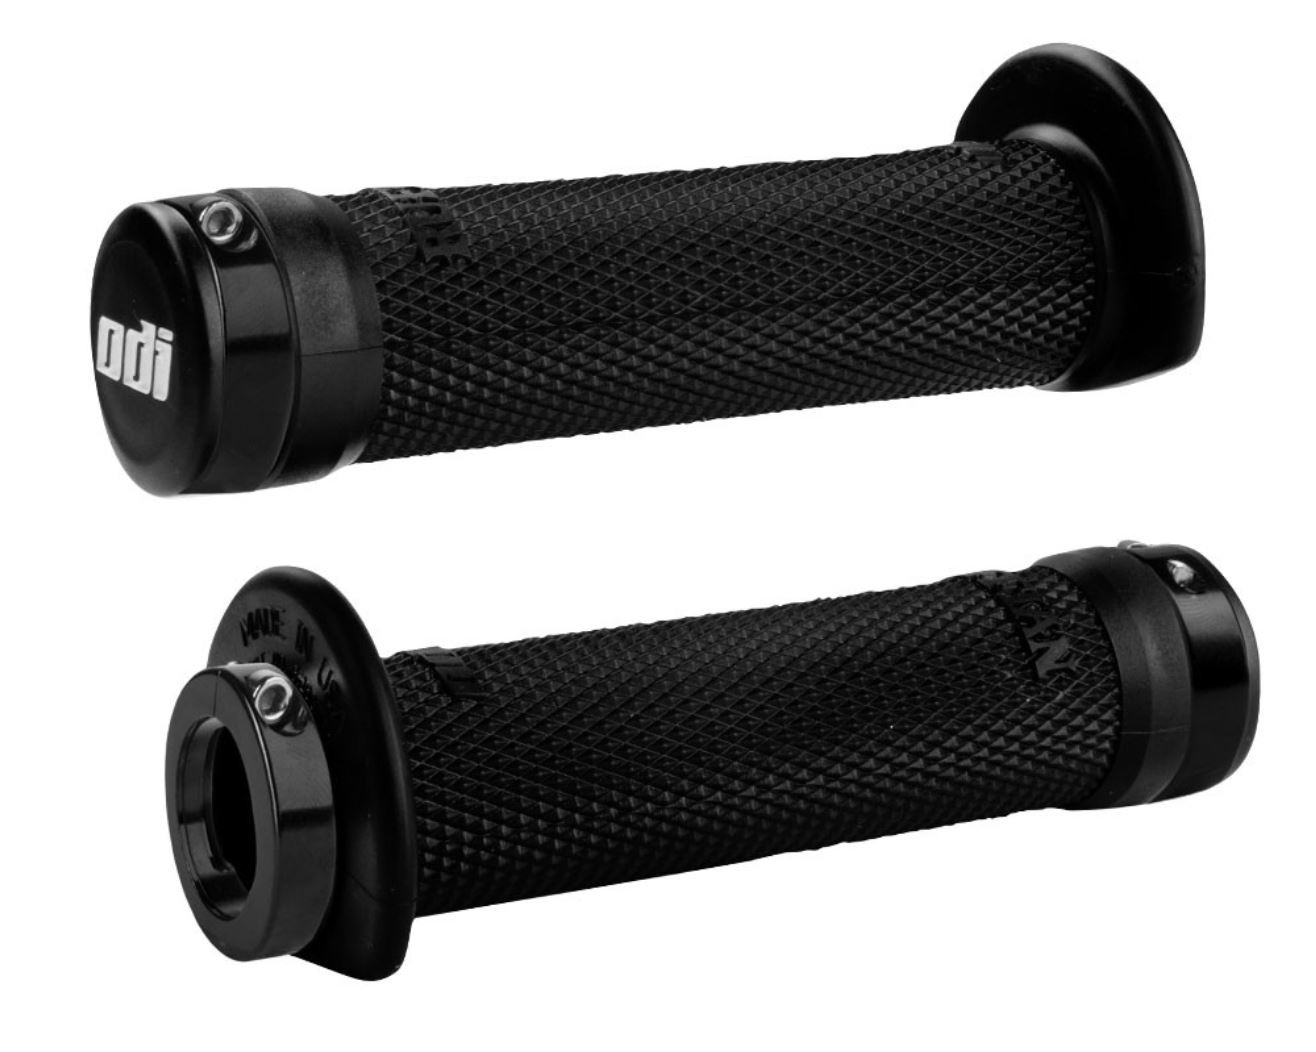 ODI Ruffian Lock-On ATV Grips Black w/ Black Clamps